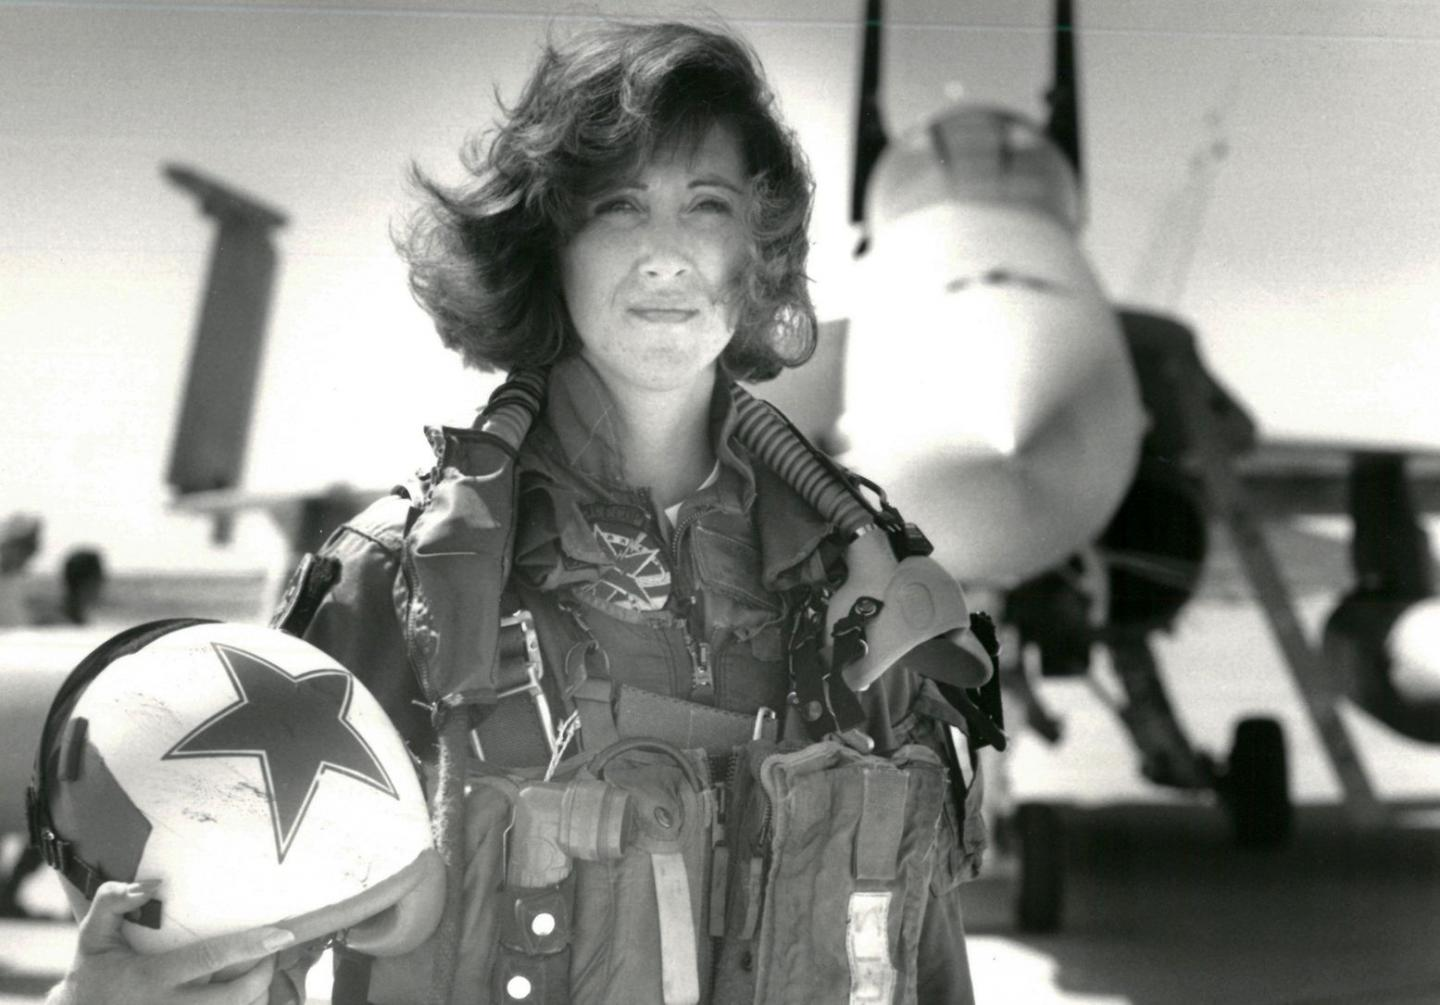 Hero: Former F/A-18 Hornet Pilot Tammie Jo Shults Safely Lands a Southwest 737 with Its Engine Blown Up